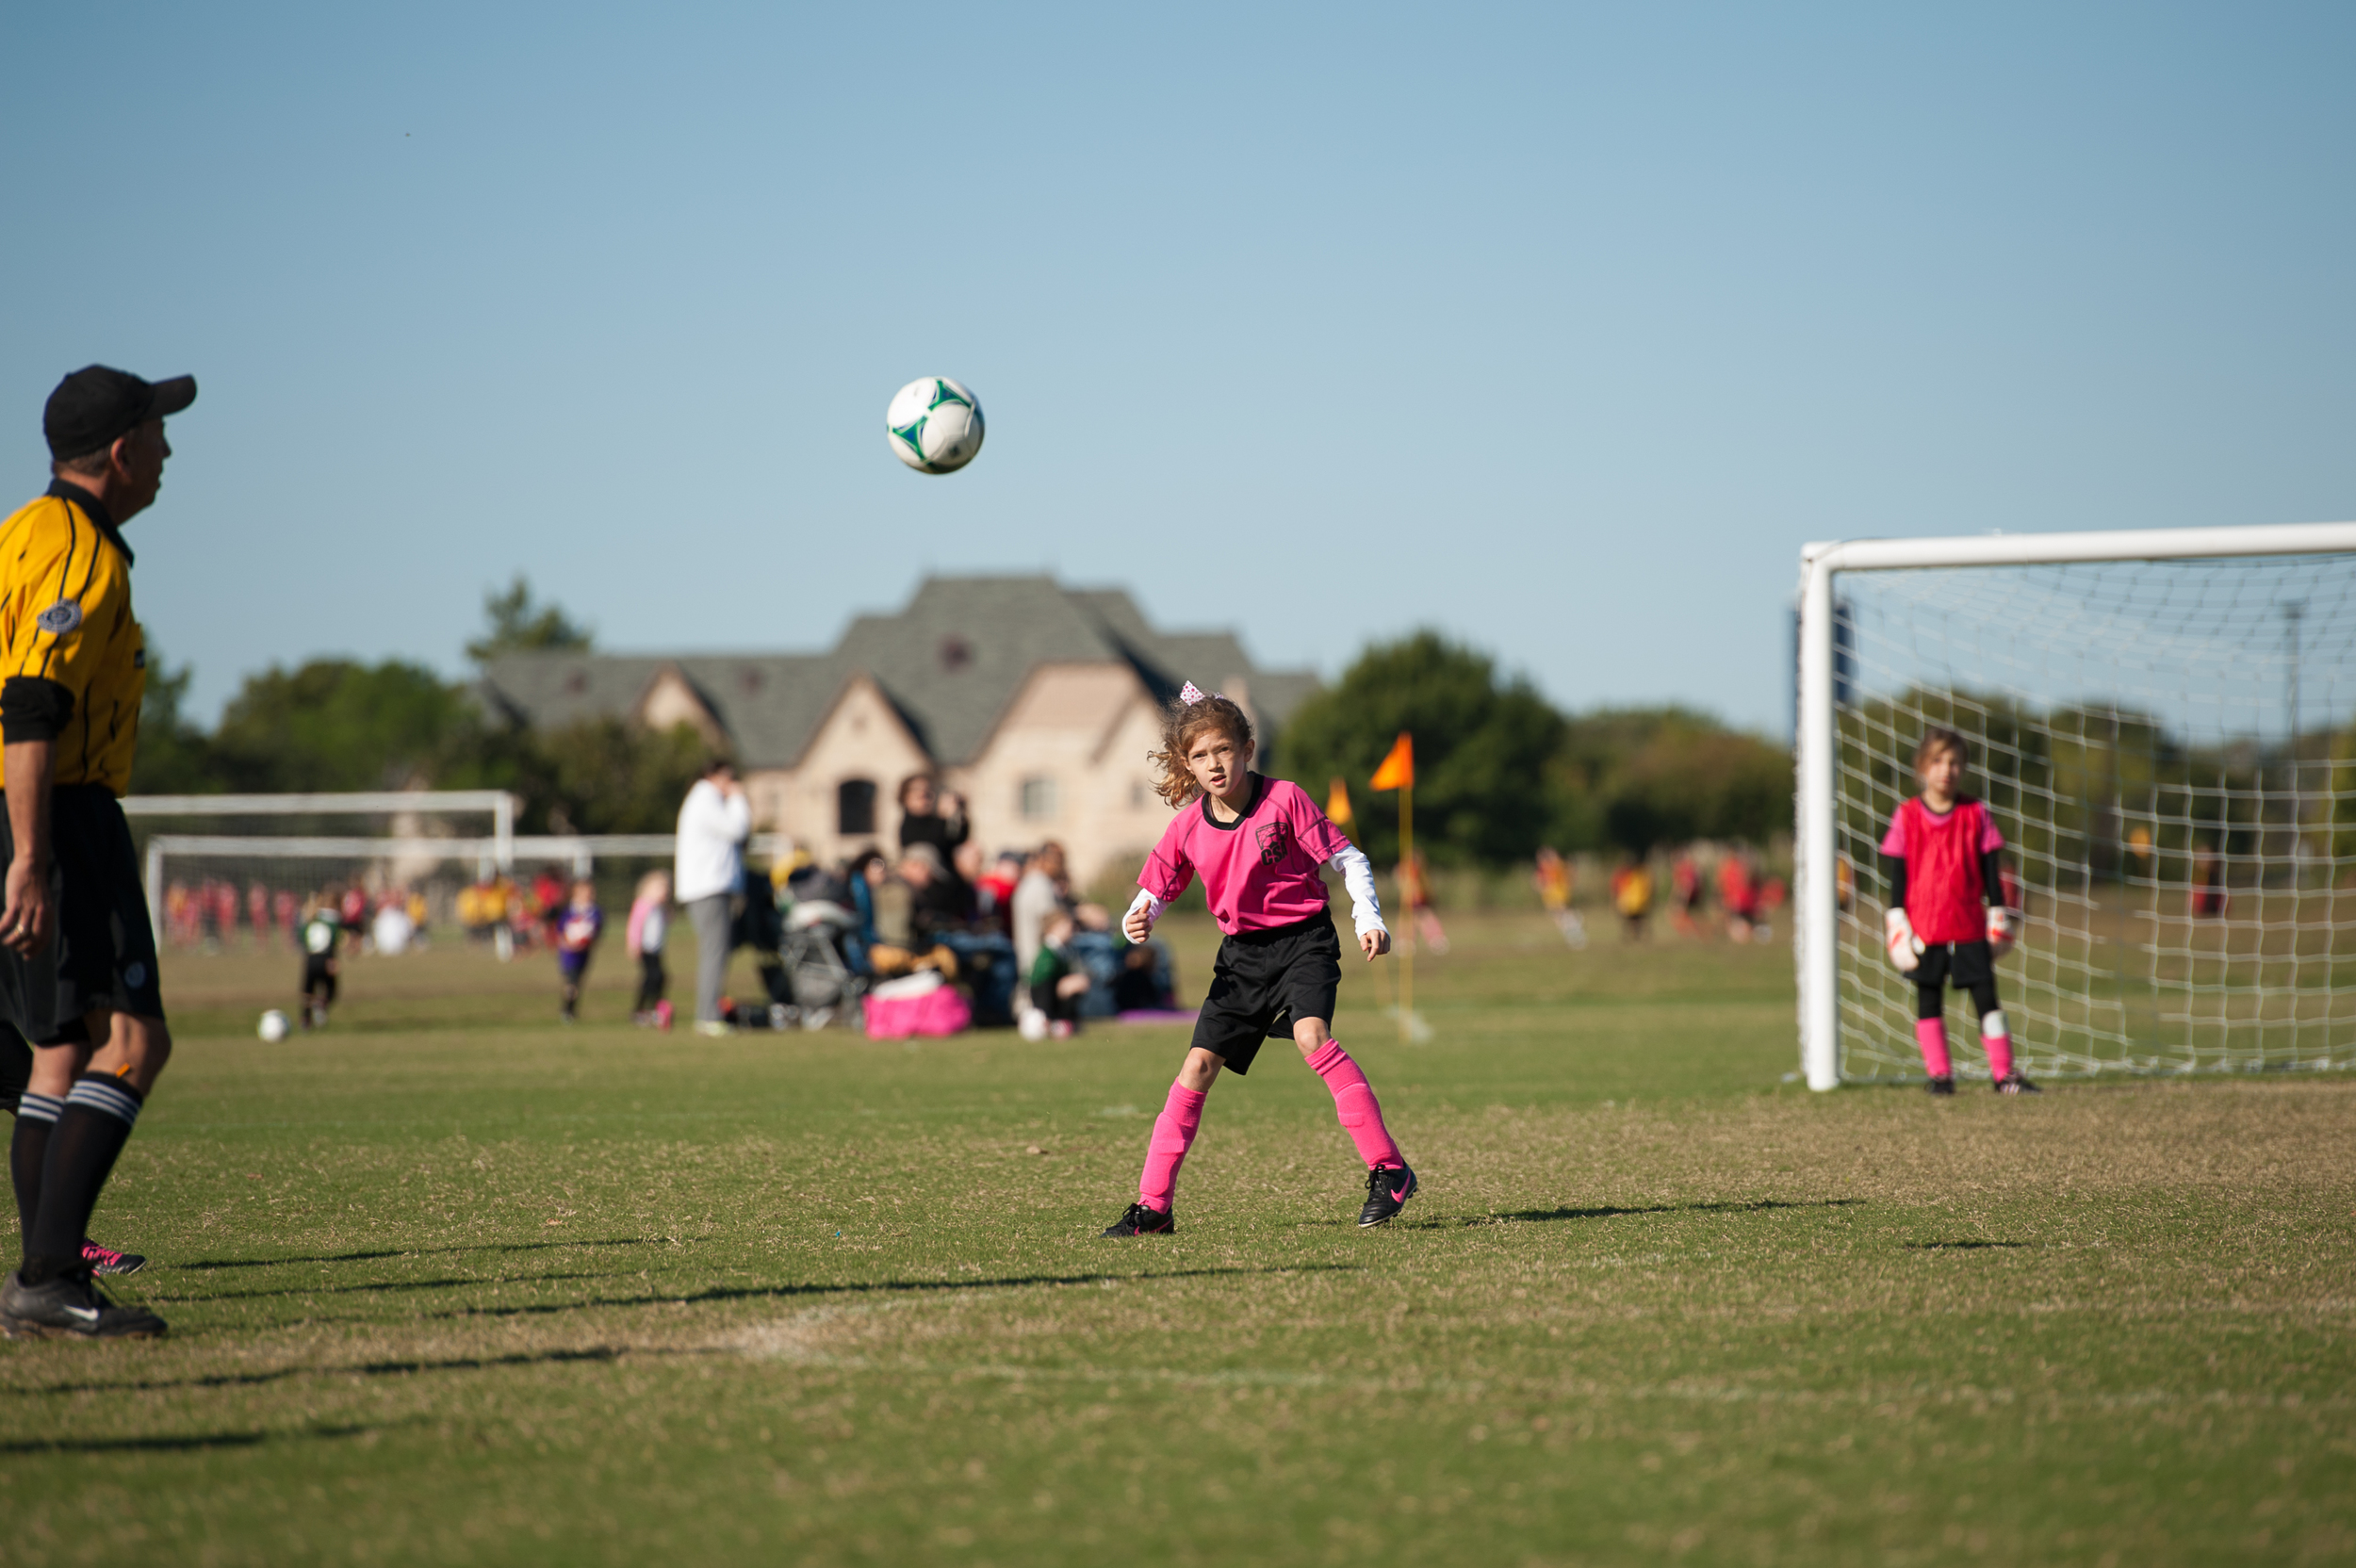 A moment earlier, I missed focus as our little defender kicked the crap out of this ball. Almost looks like she had head-butted it here!